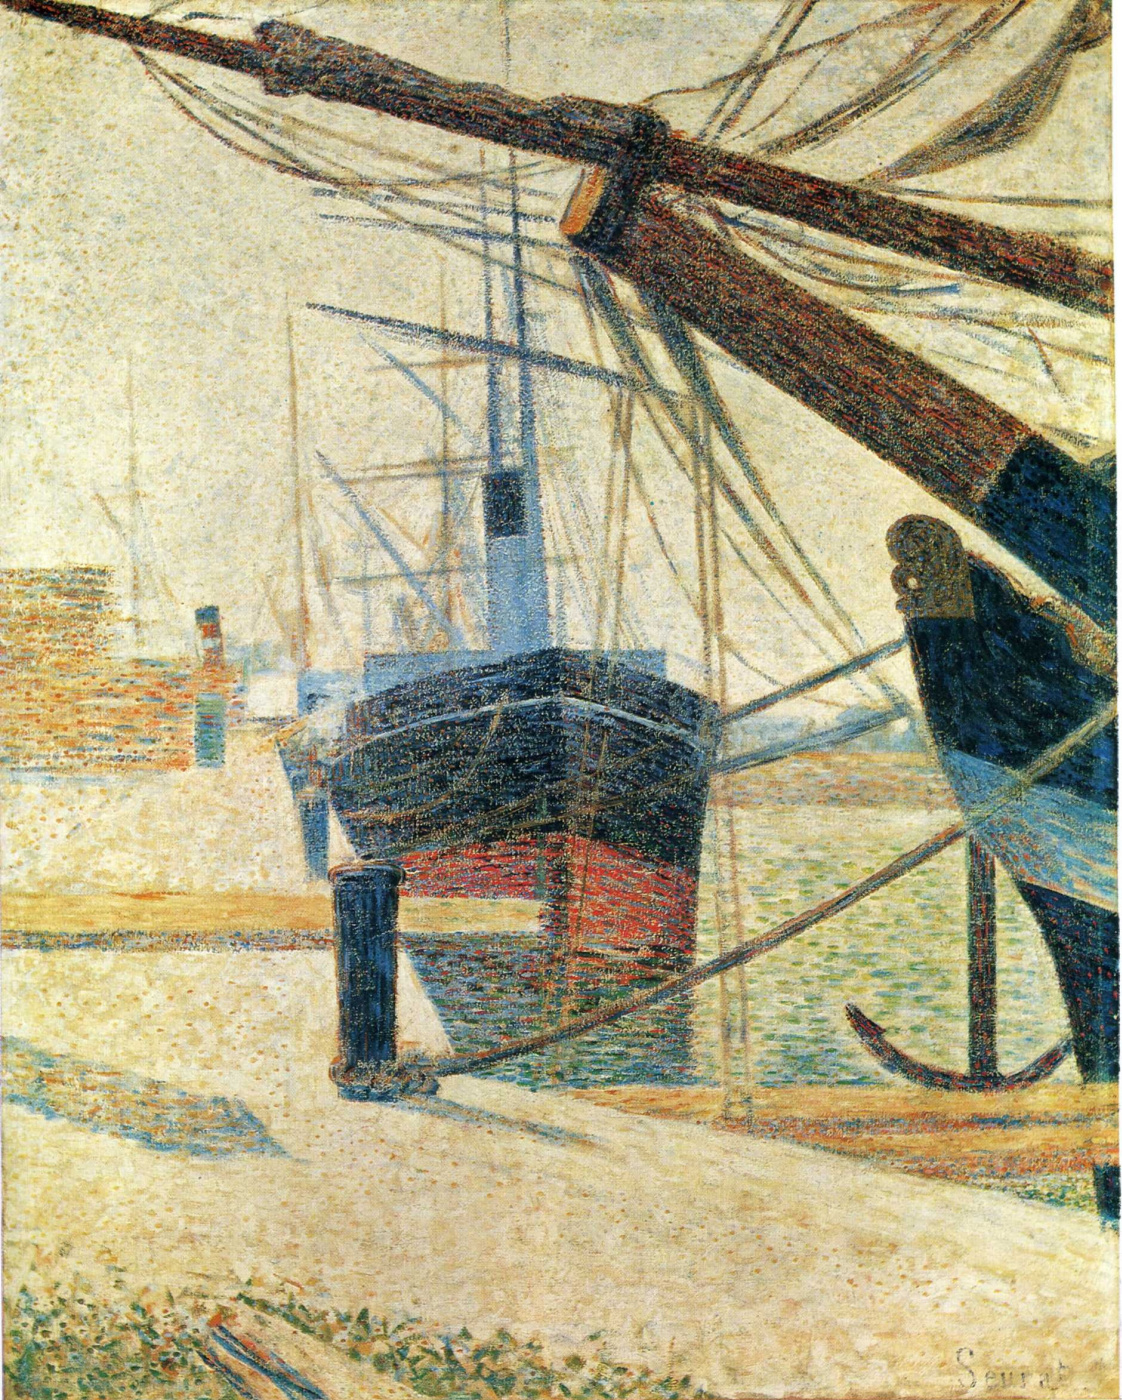 Georges Seurat. In the Harbor